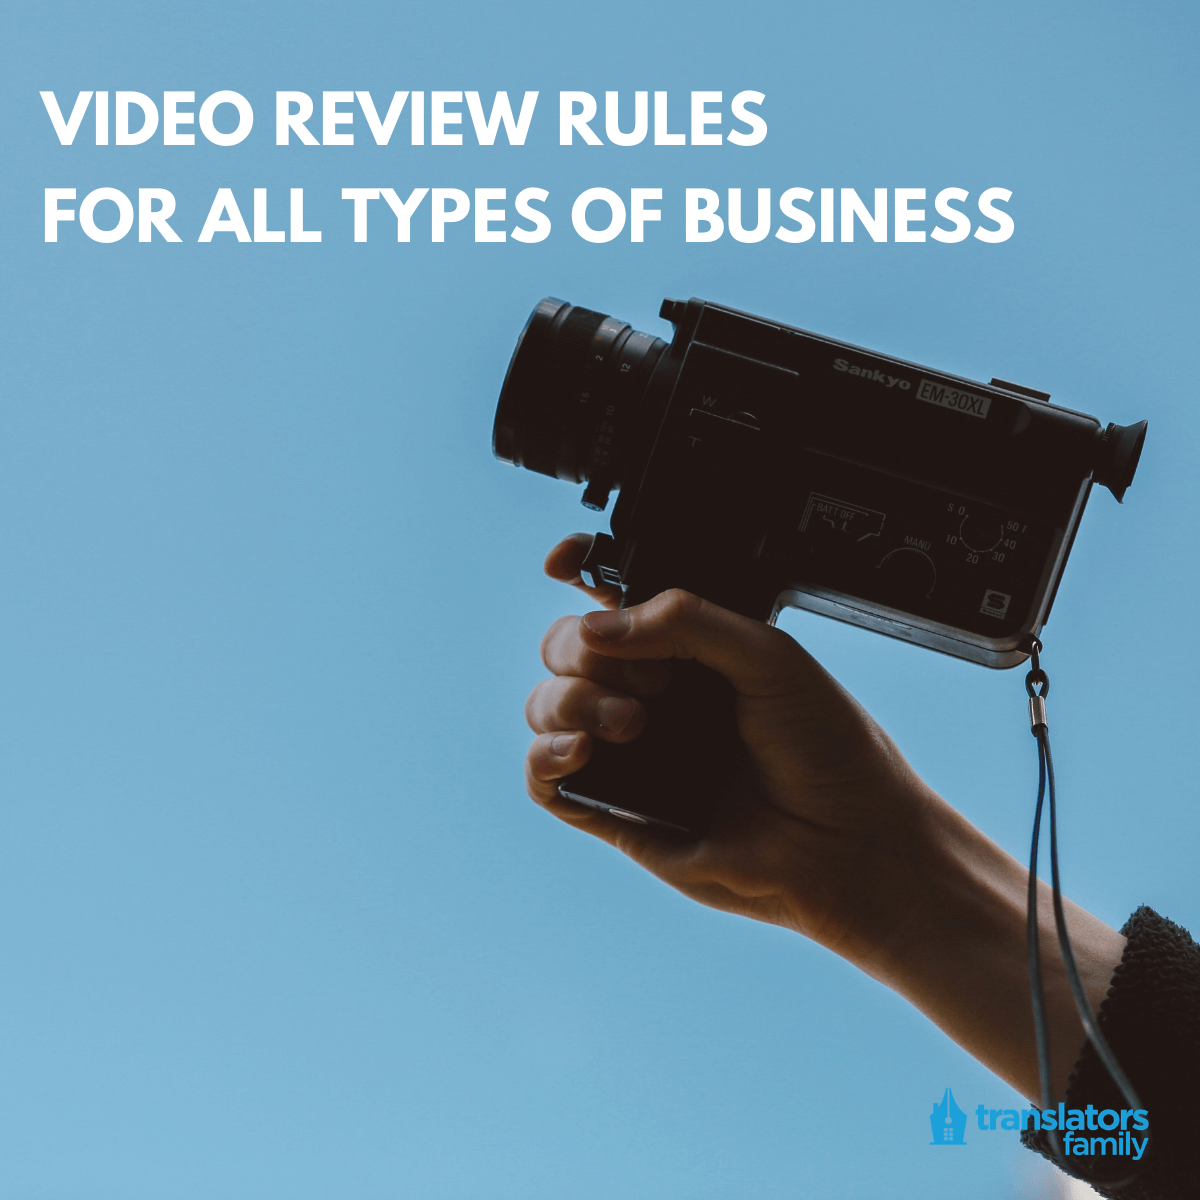 Video review rules for all types of business